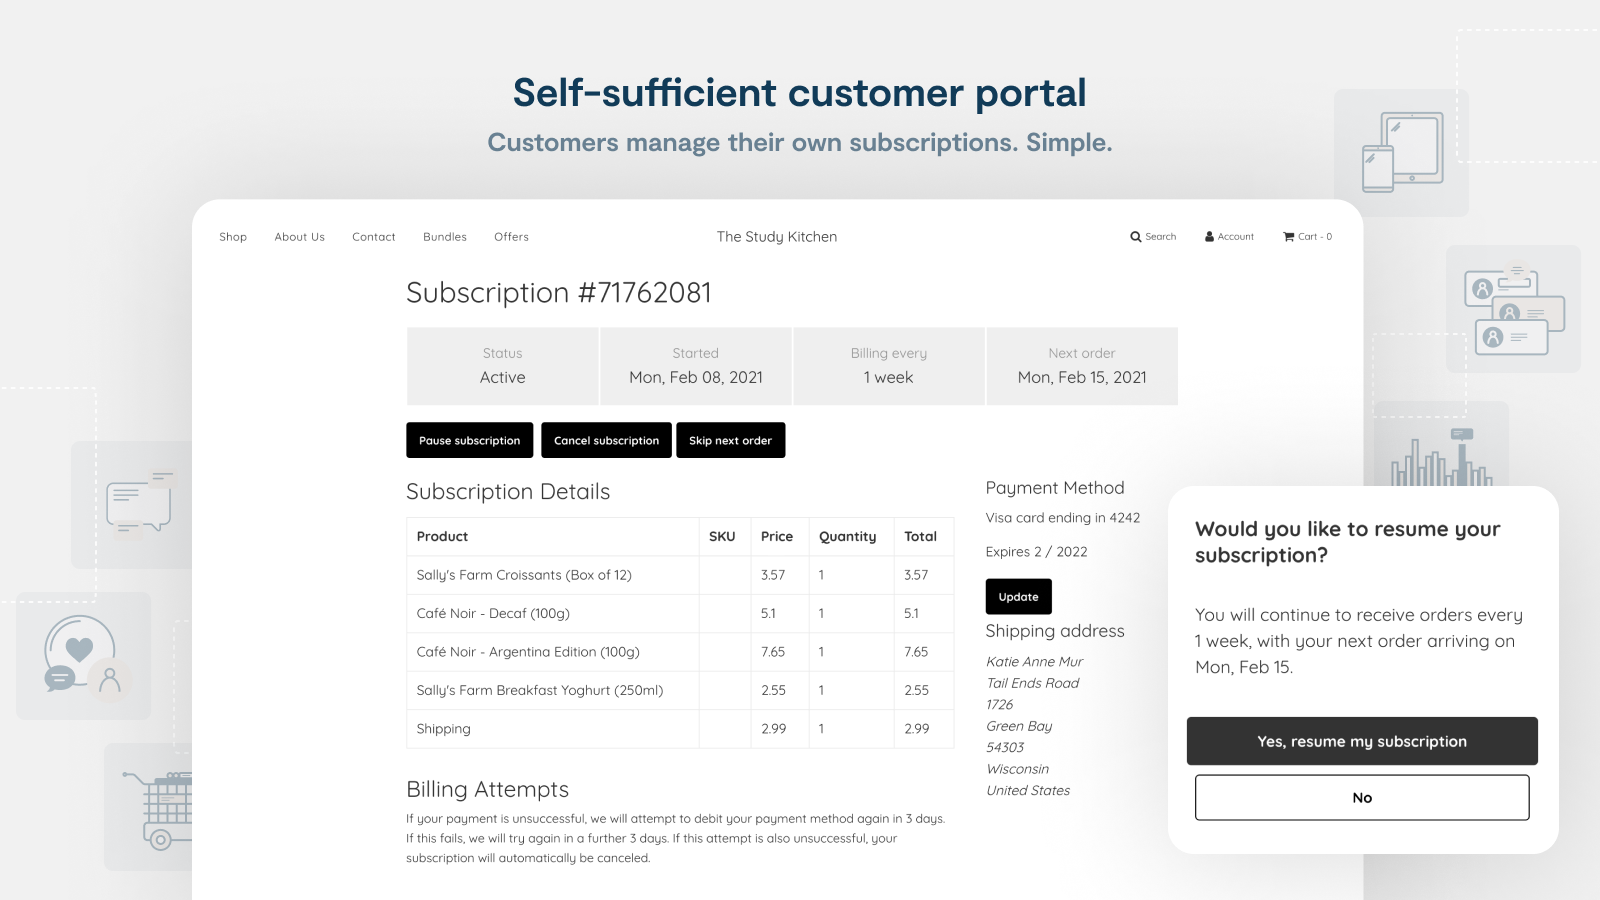 Portal in customer's account to manage, pause, and skip orders.